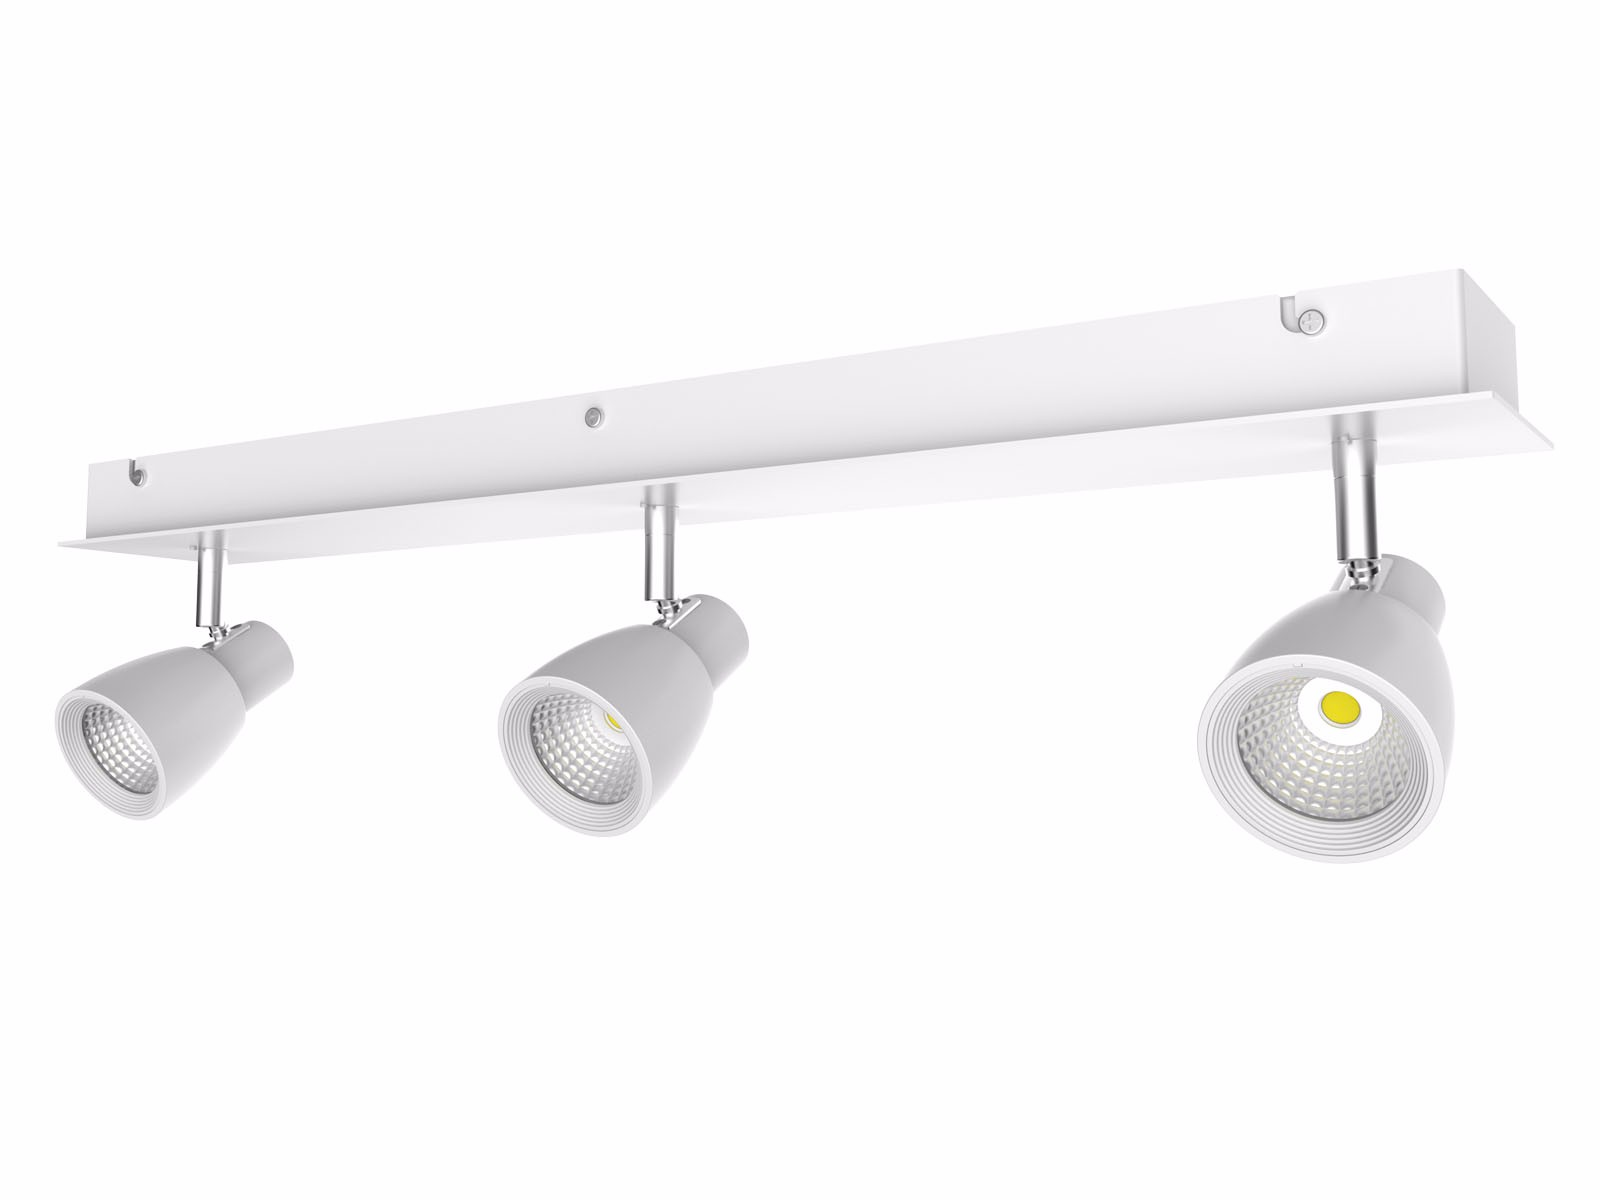 Tl15 multi head recessed led track light upshine lighting tl15 led track light mozeypictures